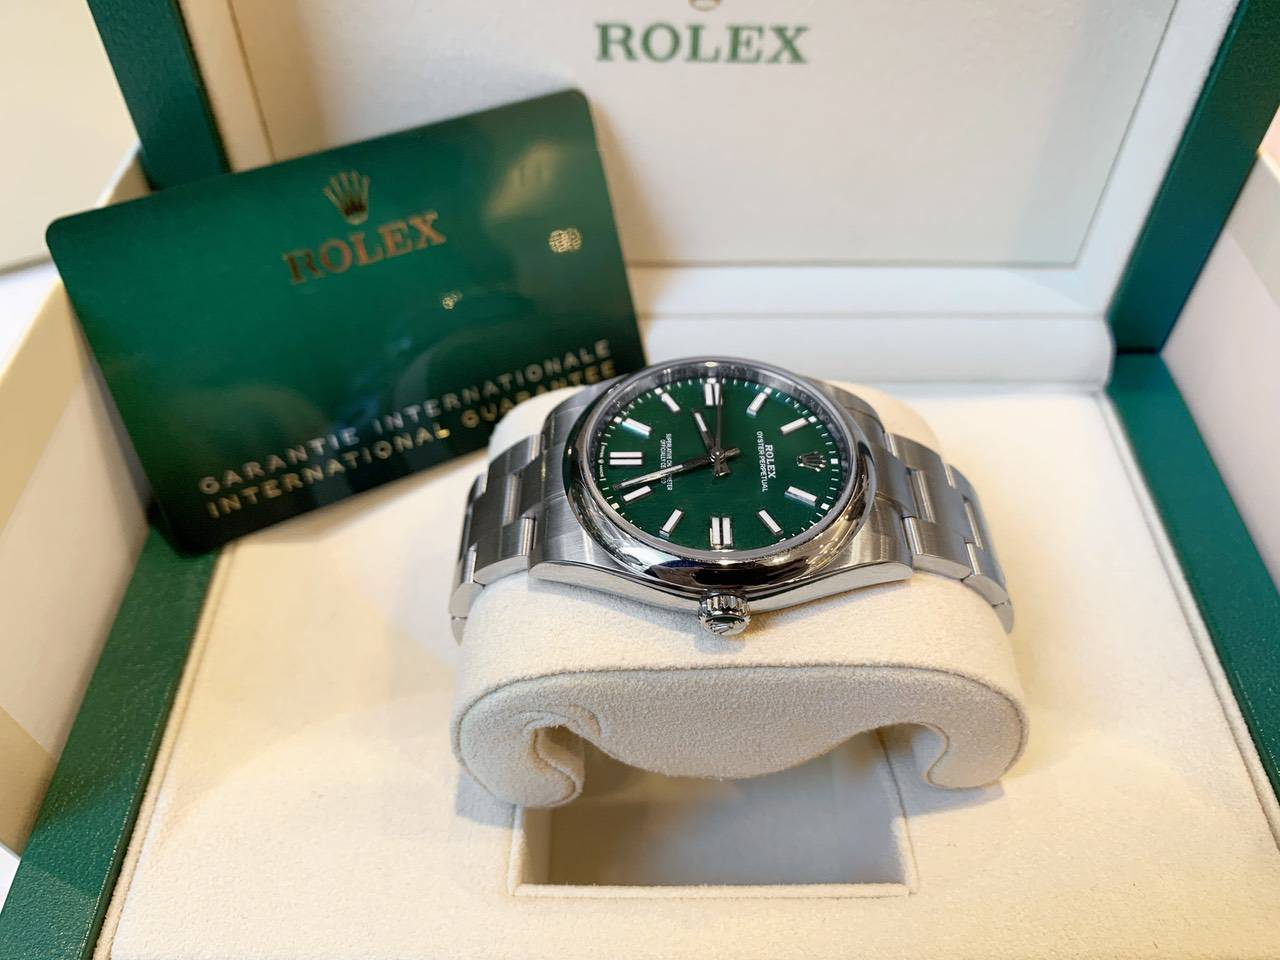 Rolex-Oyster-Perpetual-Green-124300-1